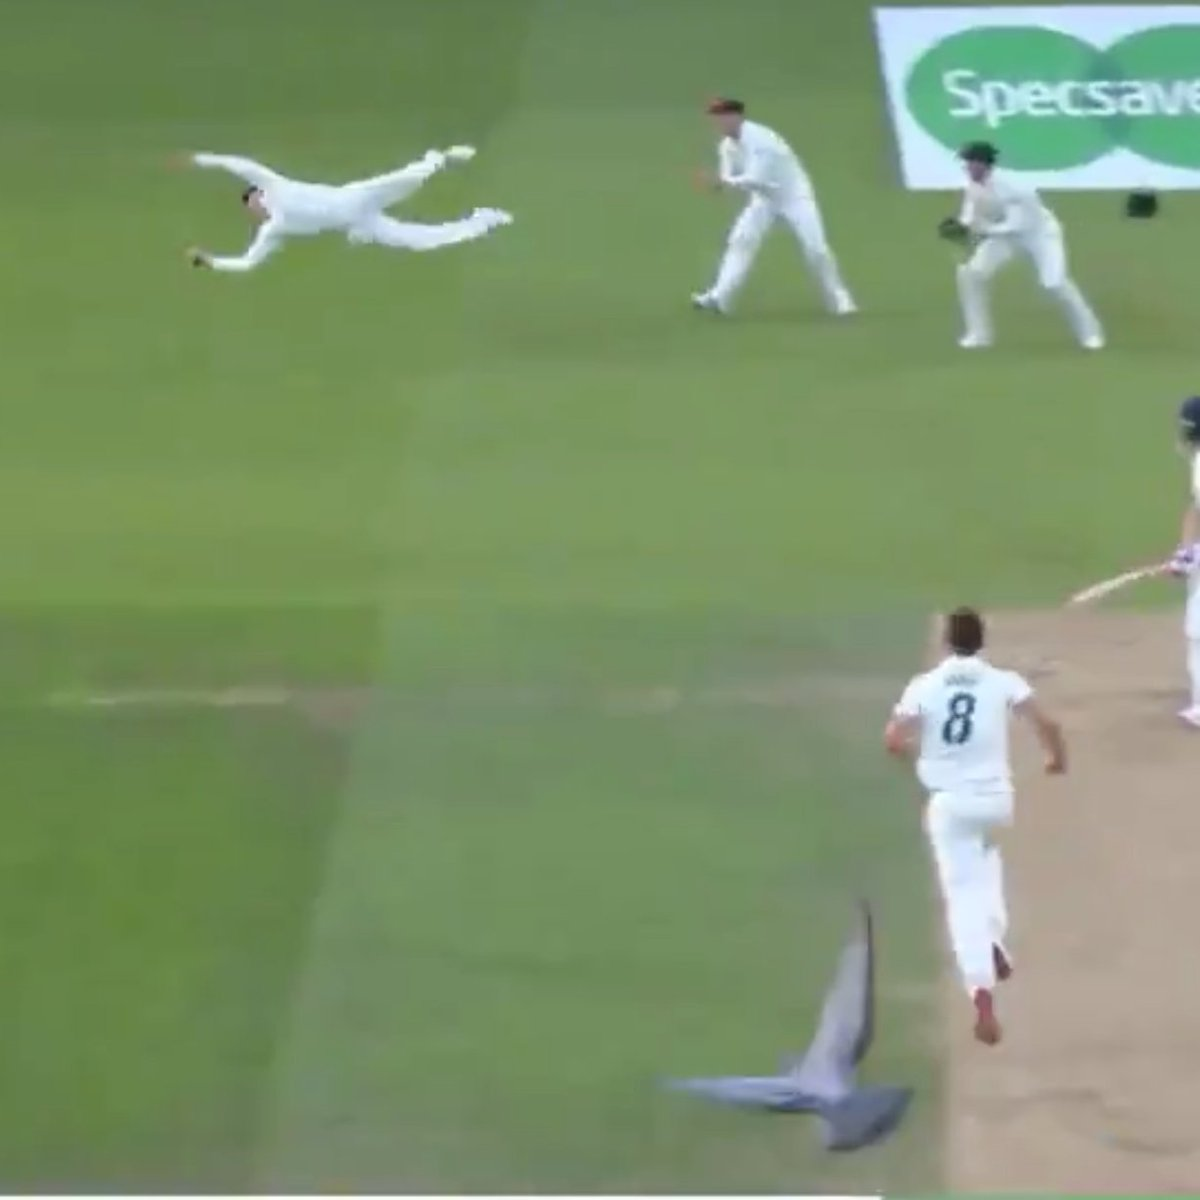 Show me a better picture, I'll wait!!! #Ashes #ENGvAUS #SteveSmith <br>http://pic.twitter.com/JwrMCKr5oR